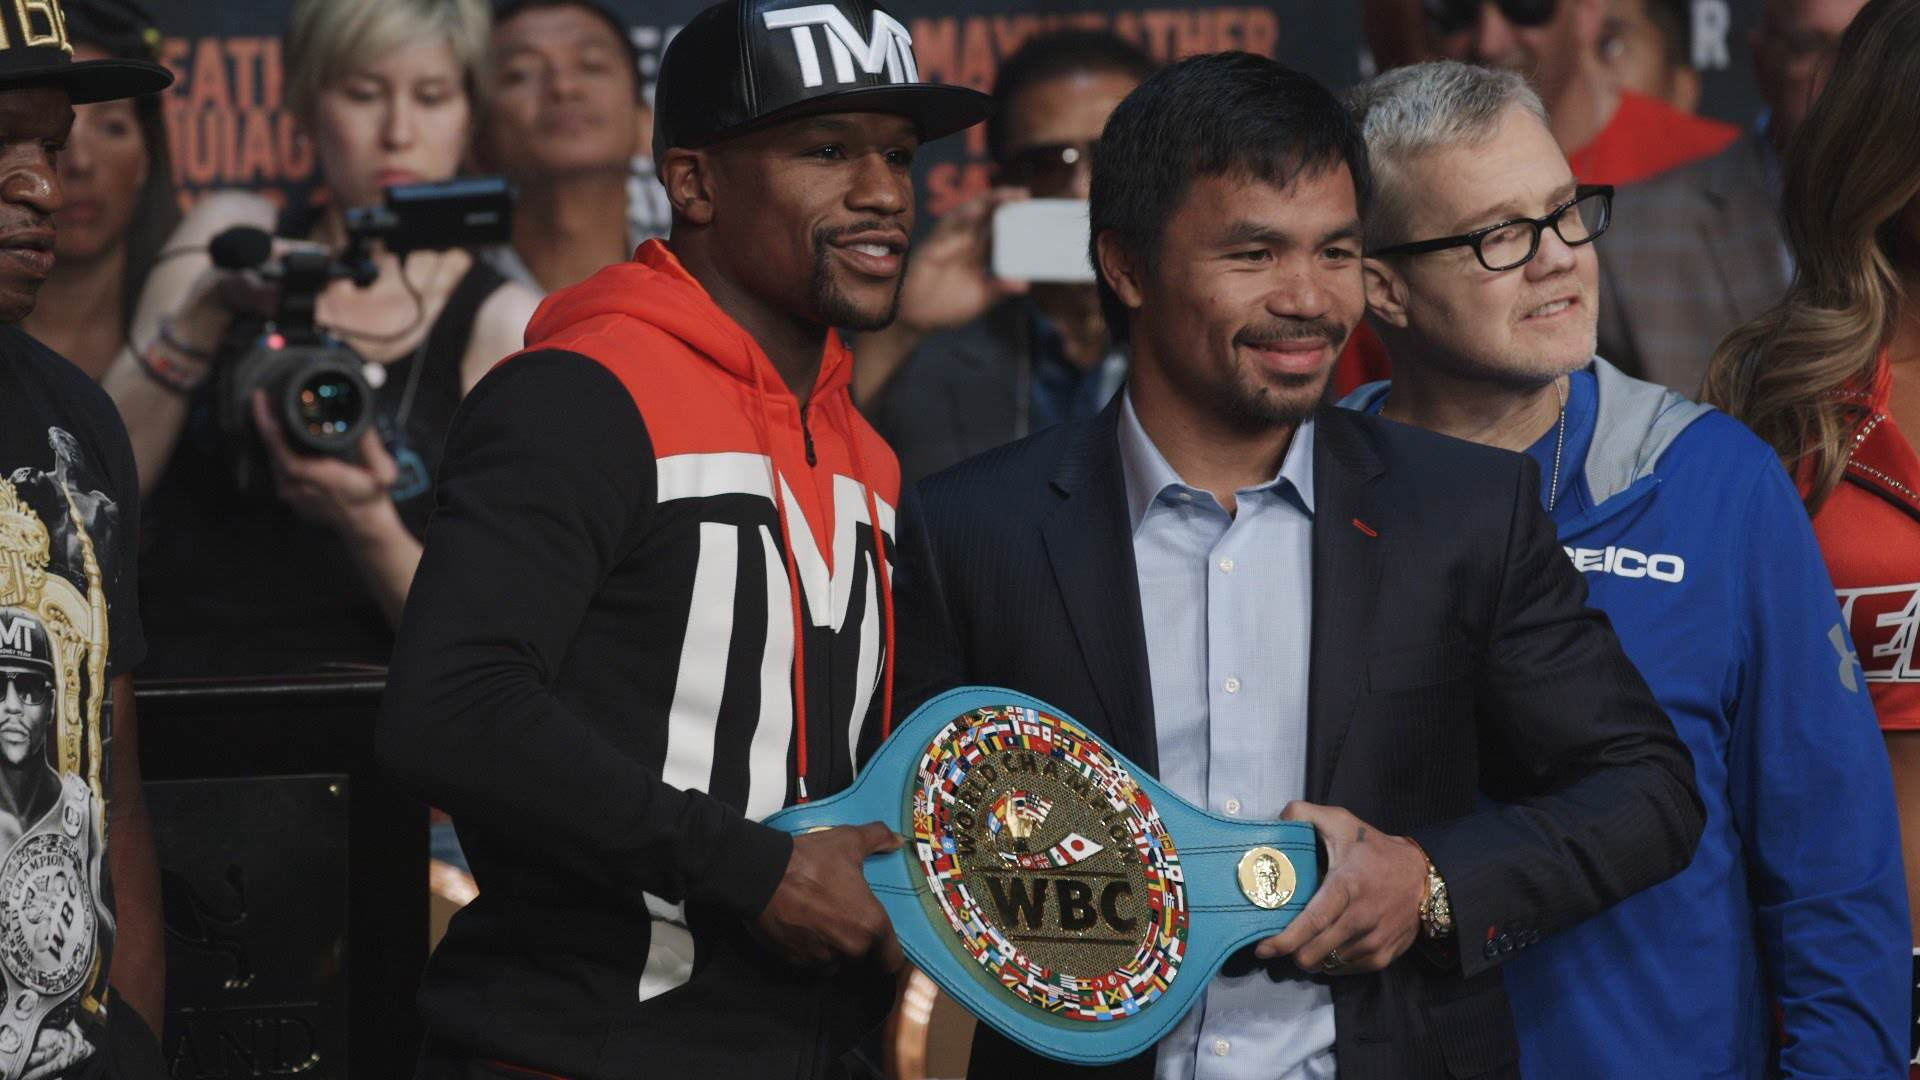 manny pacquiao to spend 3 millio Mayweather Says No To Rematch, Calls Pacquiao A Sore Loser